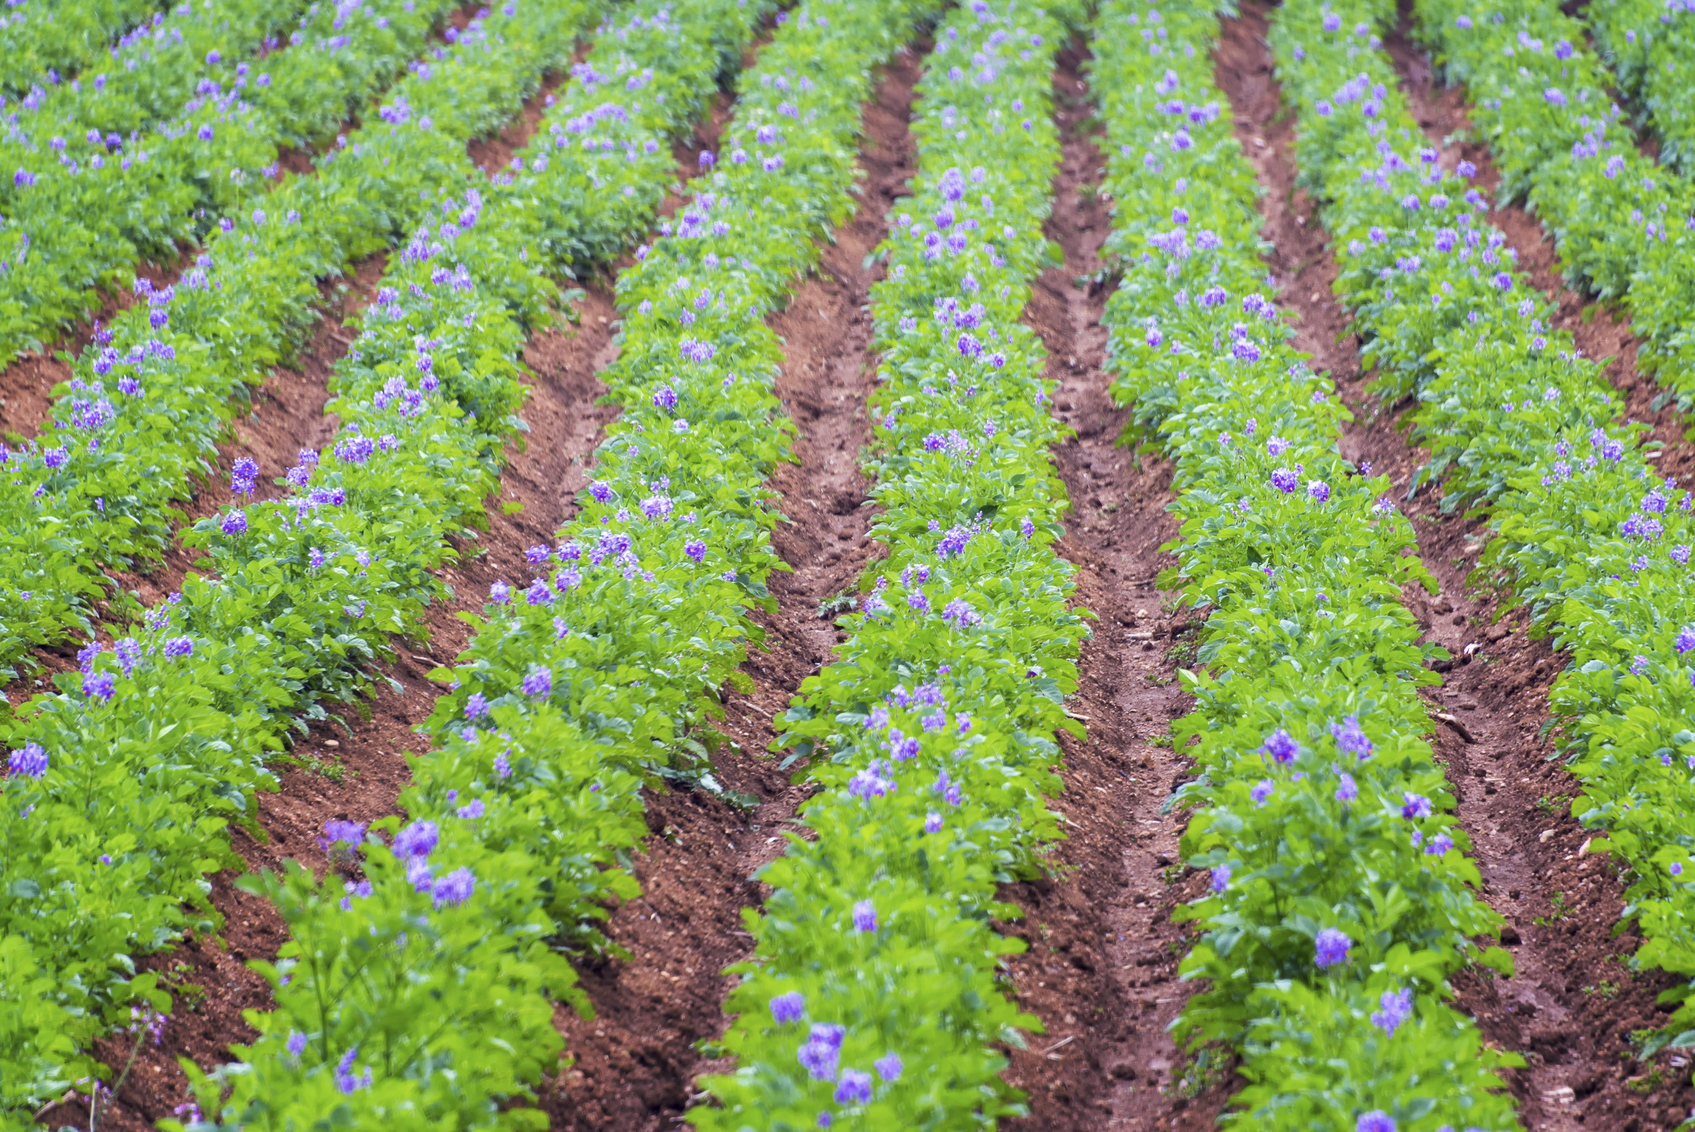 Rows of lush green potato plants with purple flowers near Concepcion, Peru